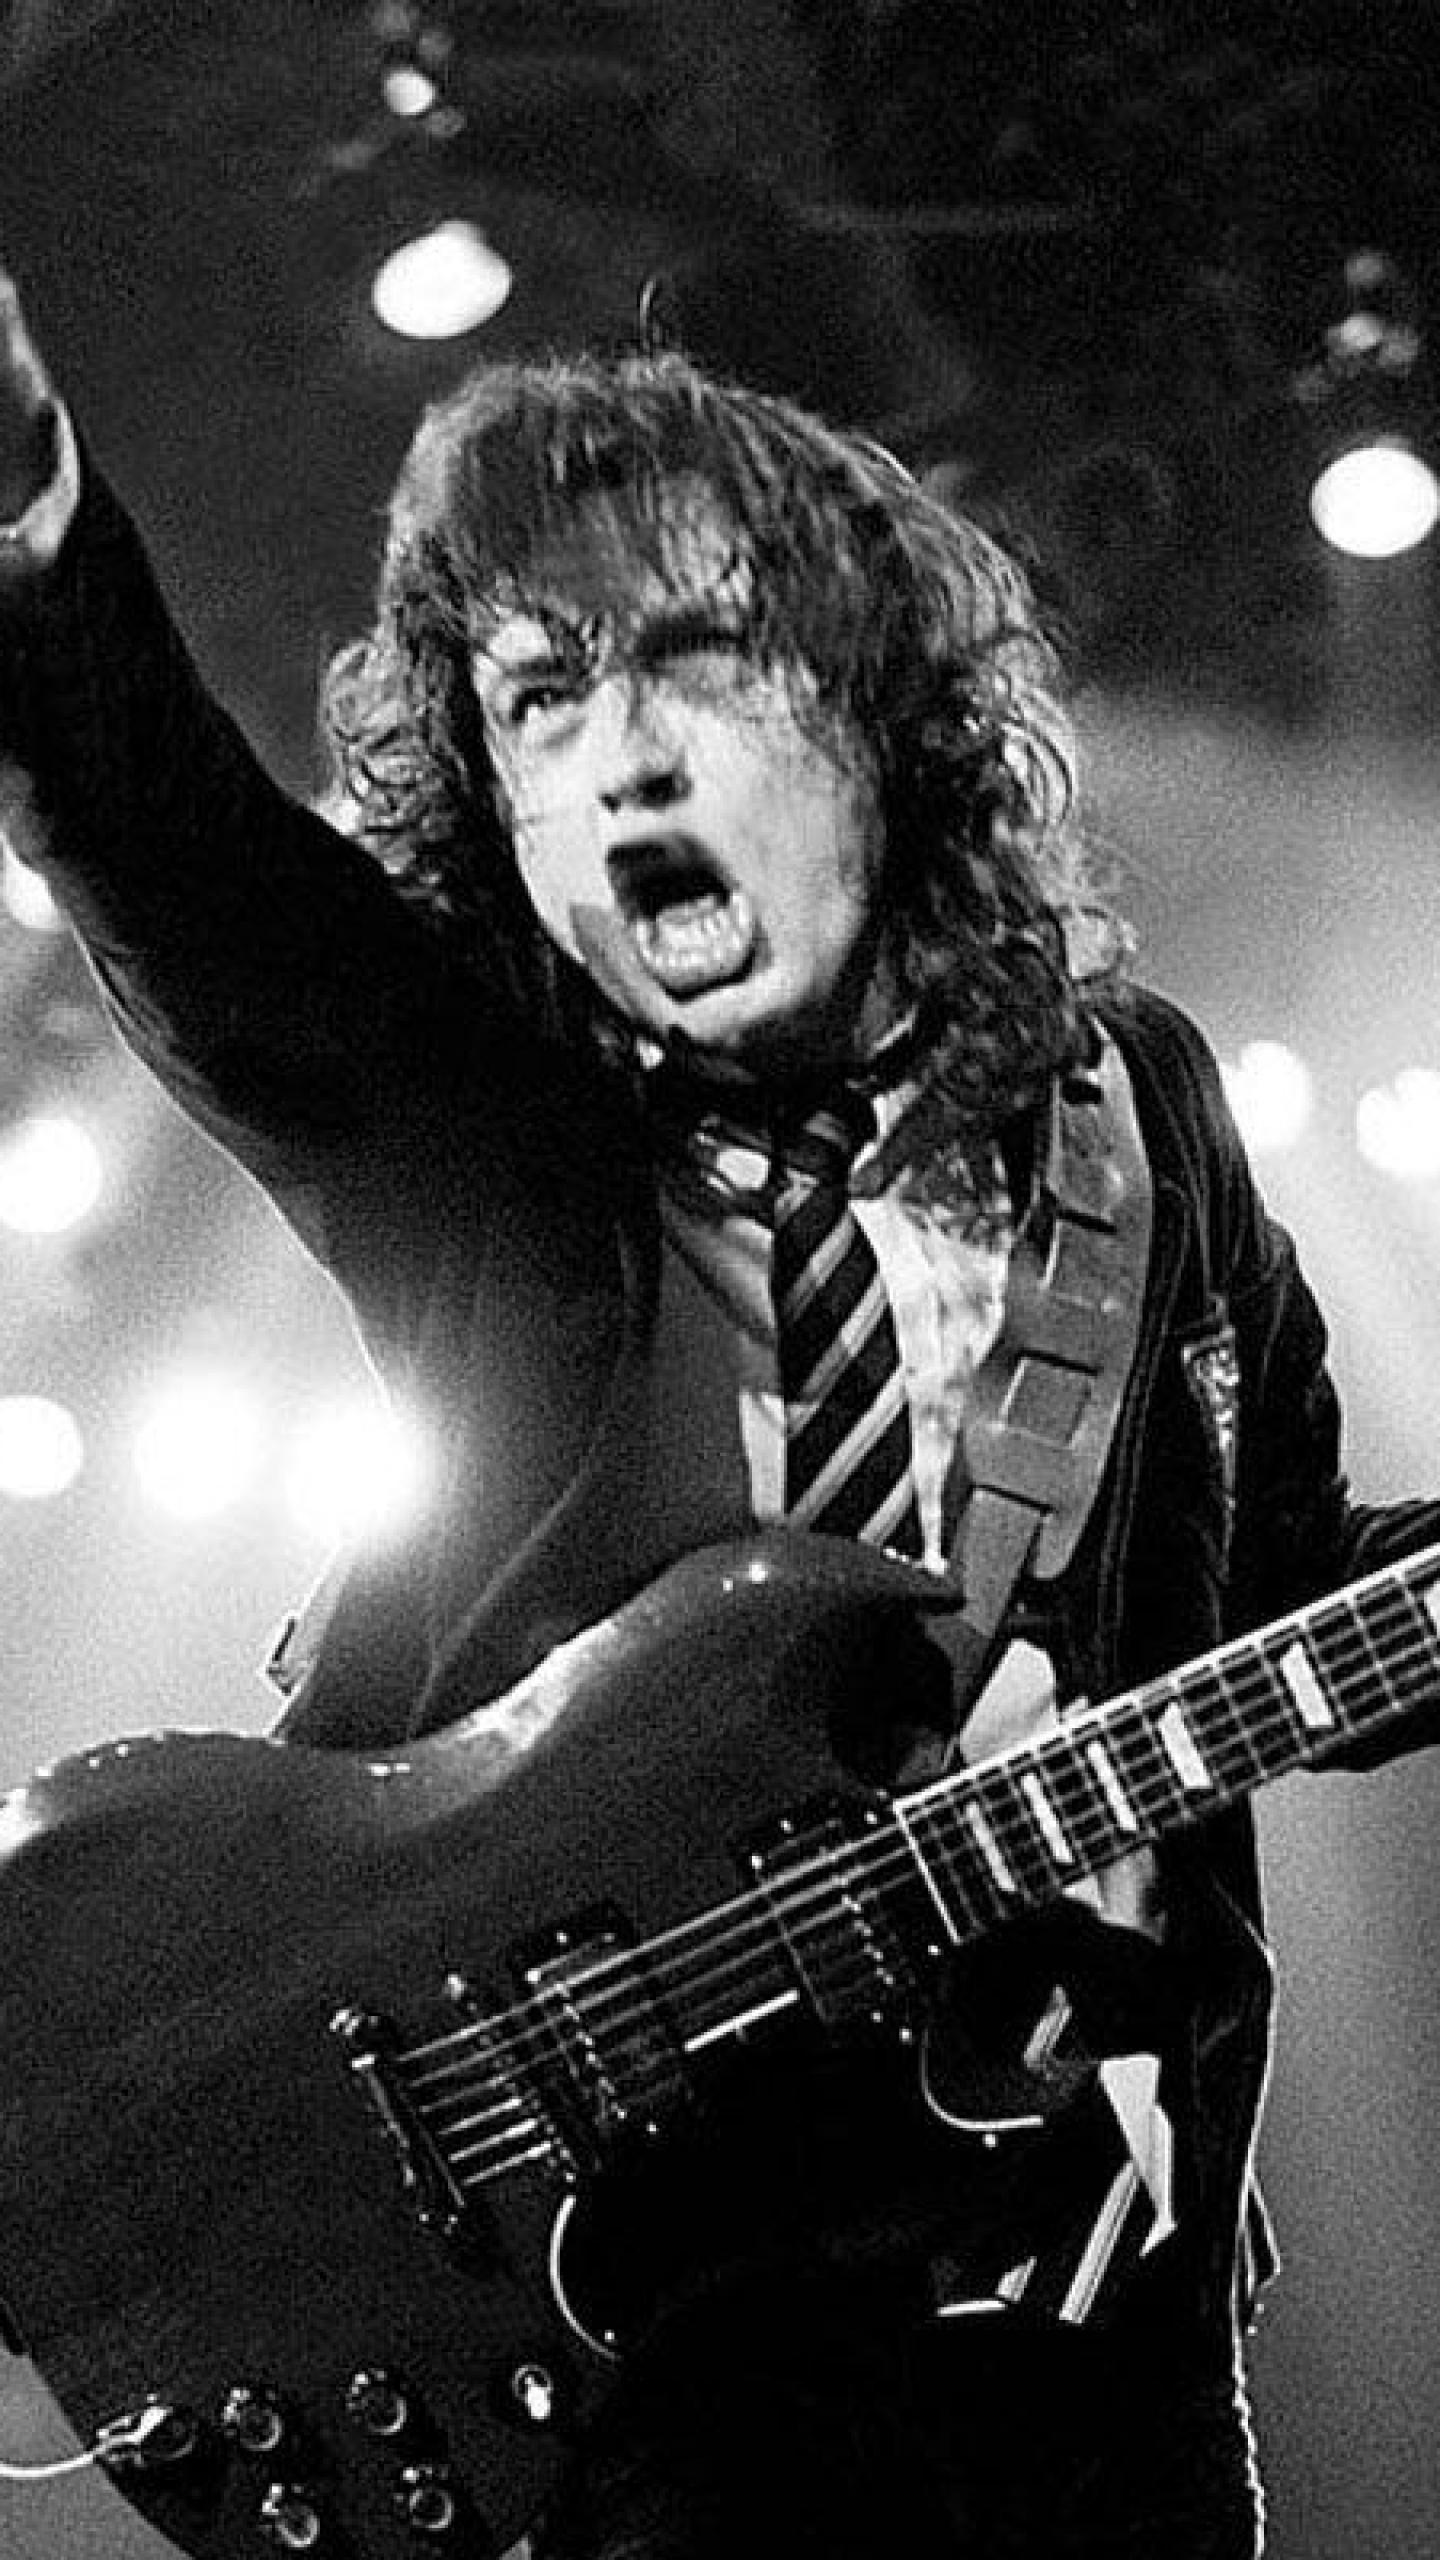 97 Angus Young Wallpapers On Wallpapersafari